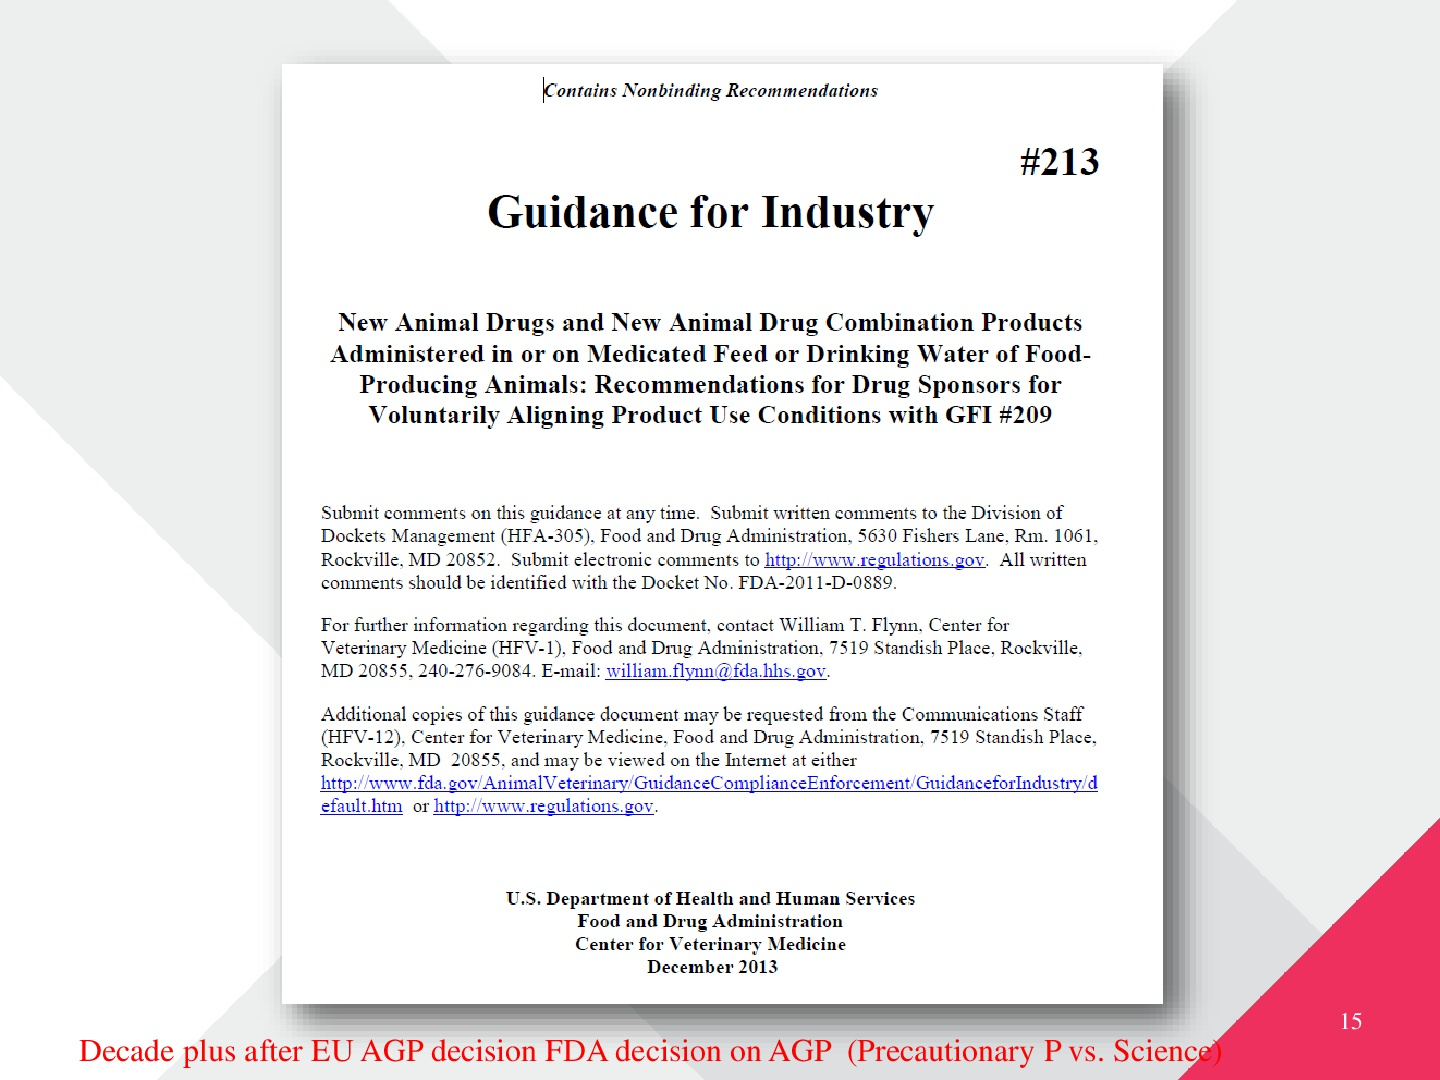 Global-overview-on-antibiotic-use-policy-in-veterinary-medicine-015_1512373864.jpg